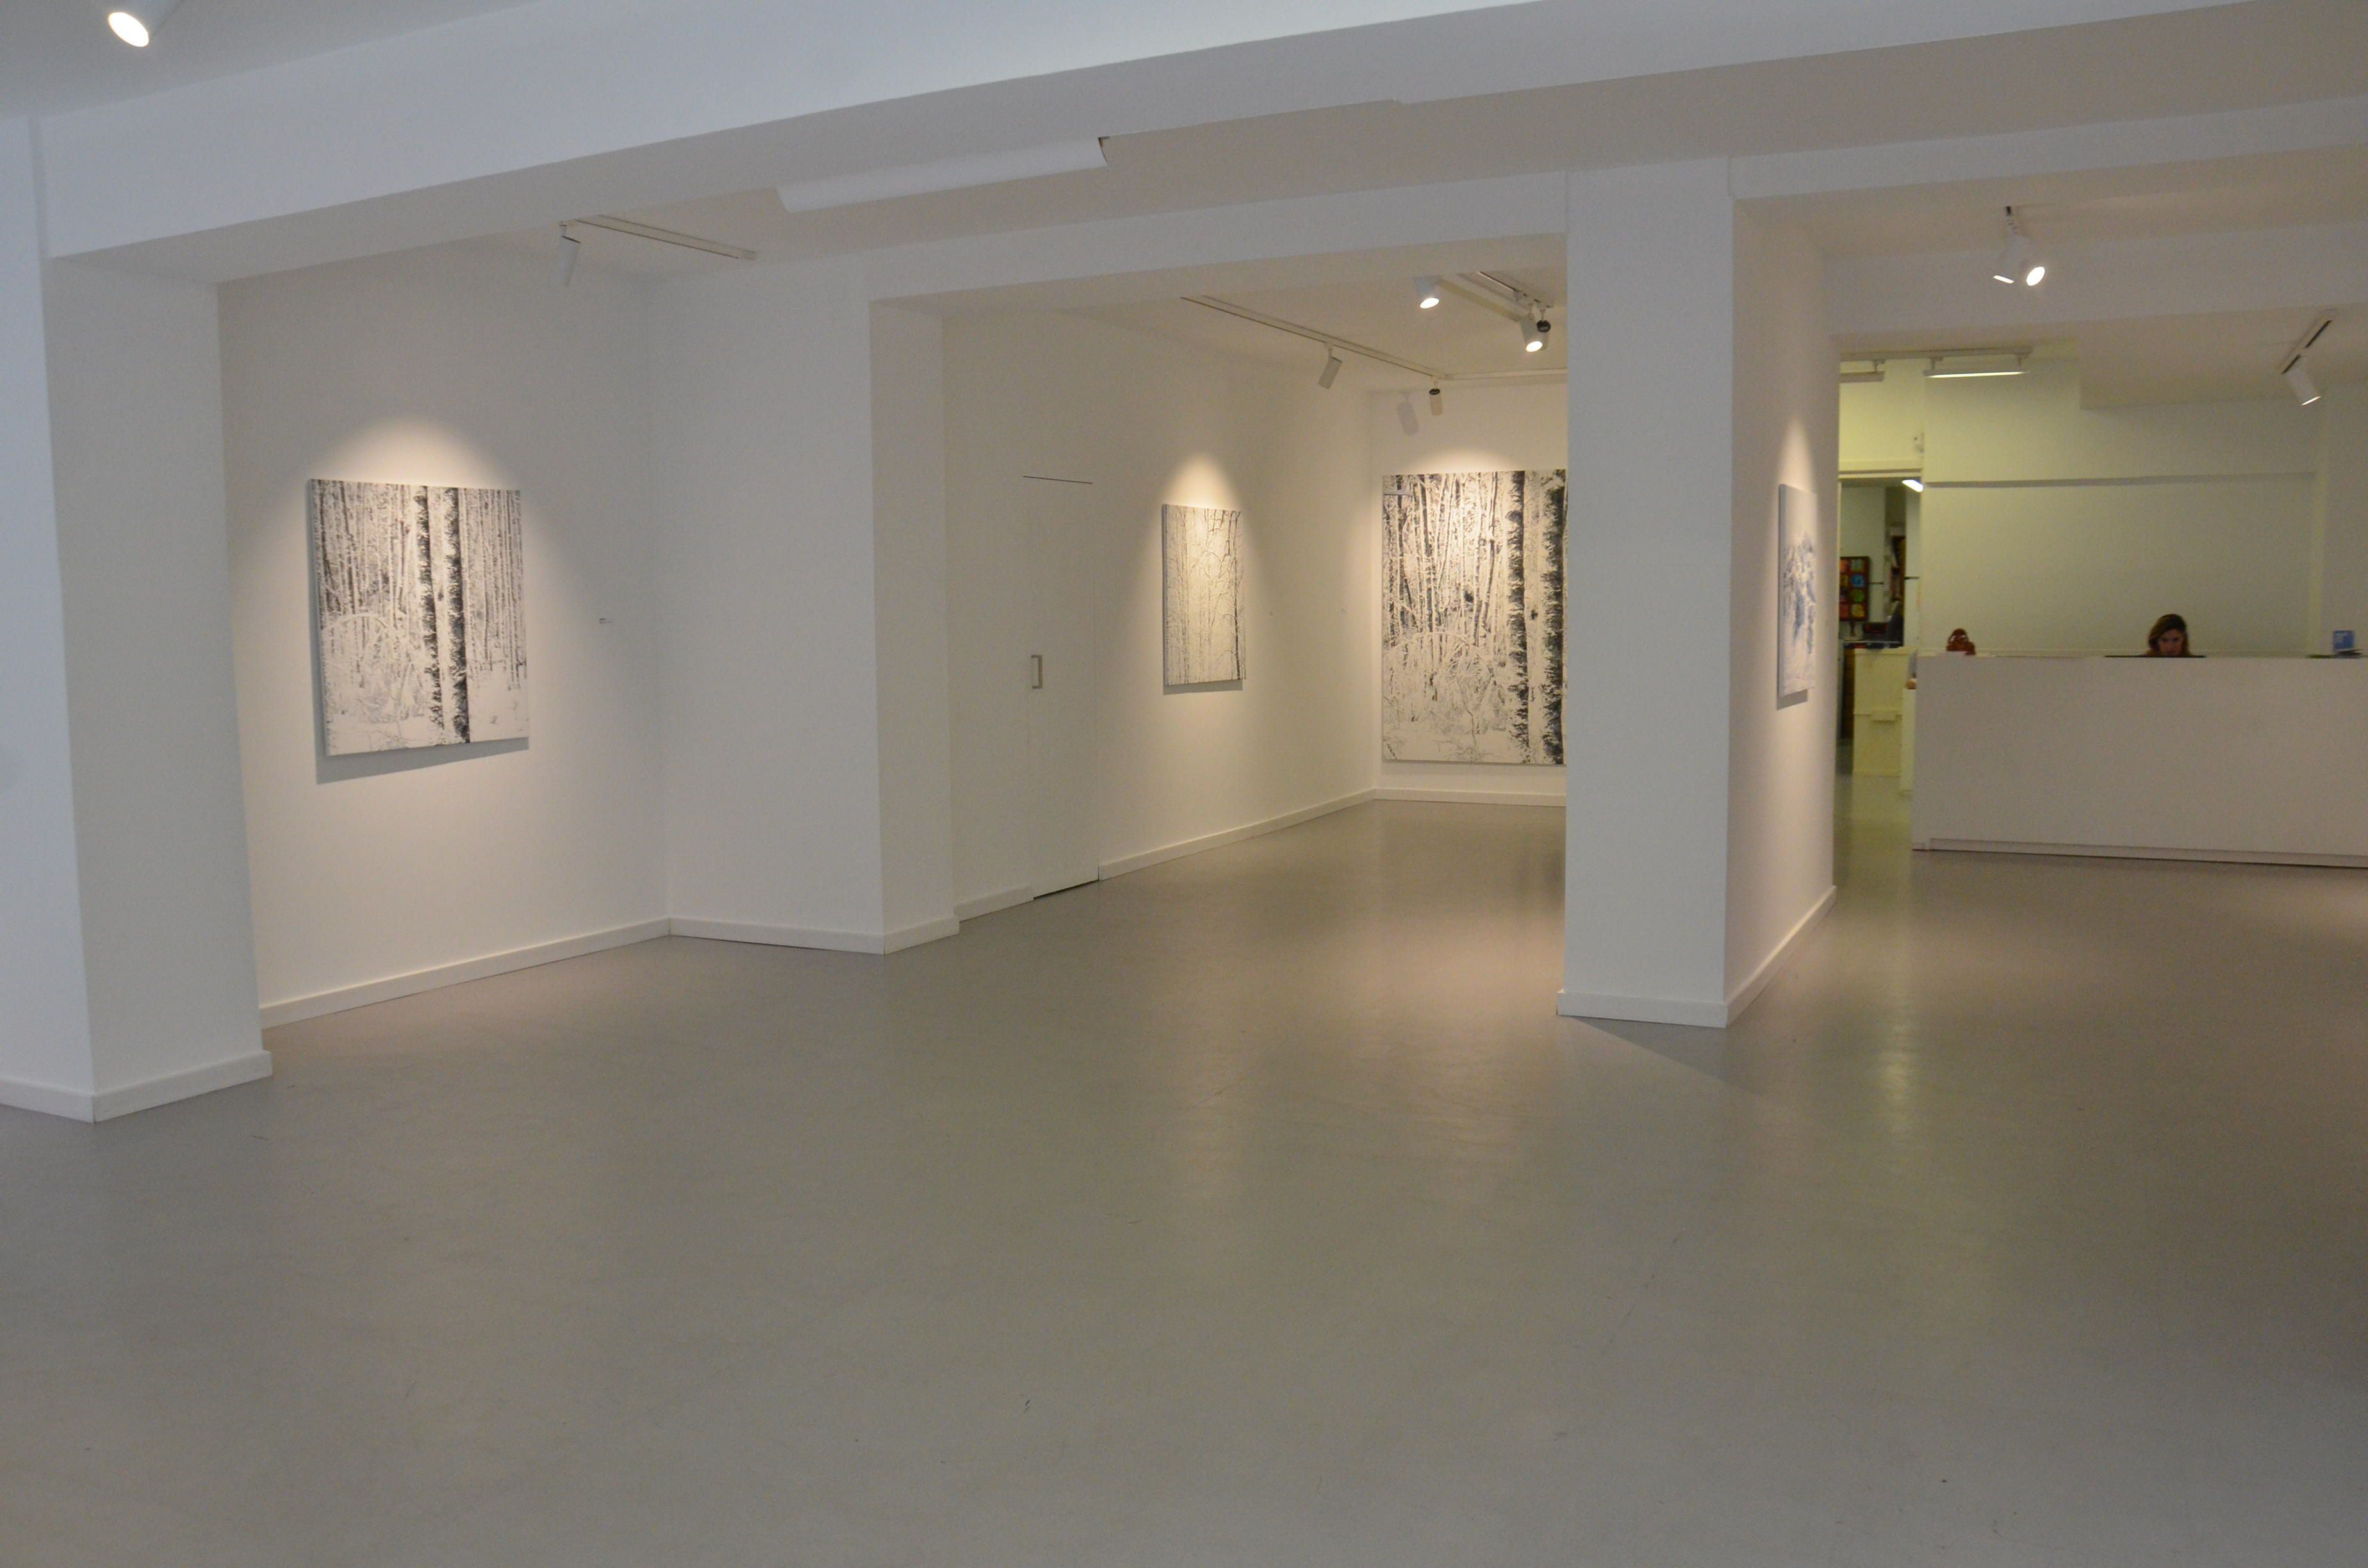 3 Punts Gallery, Barcelona: All year